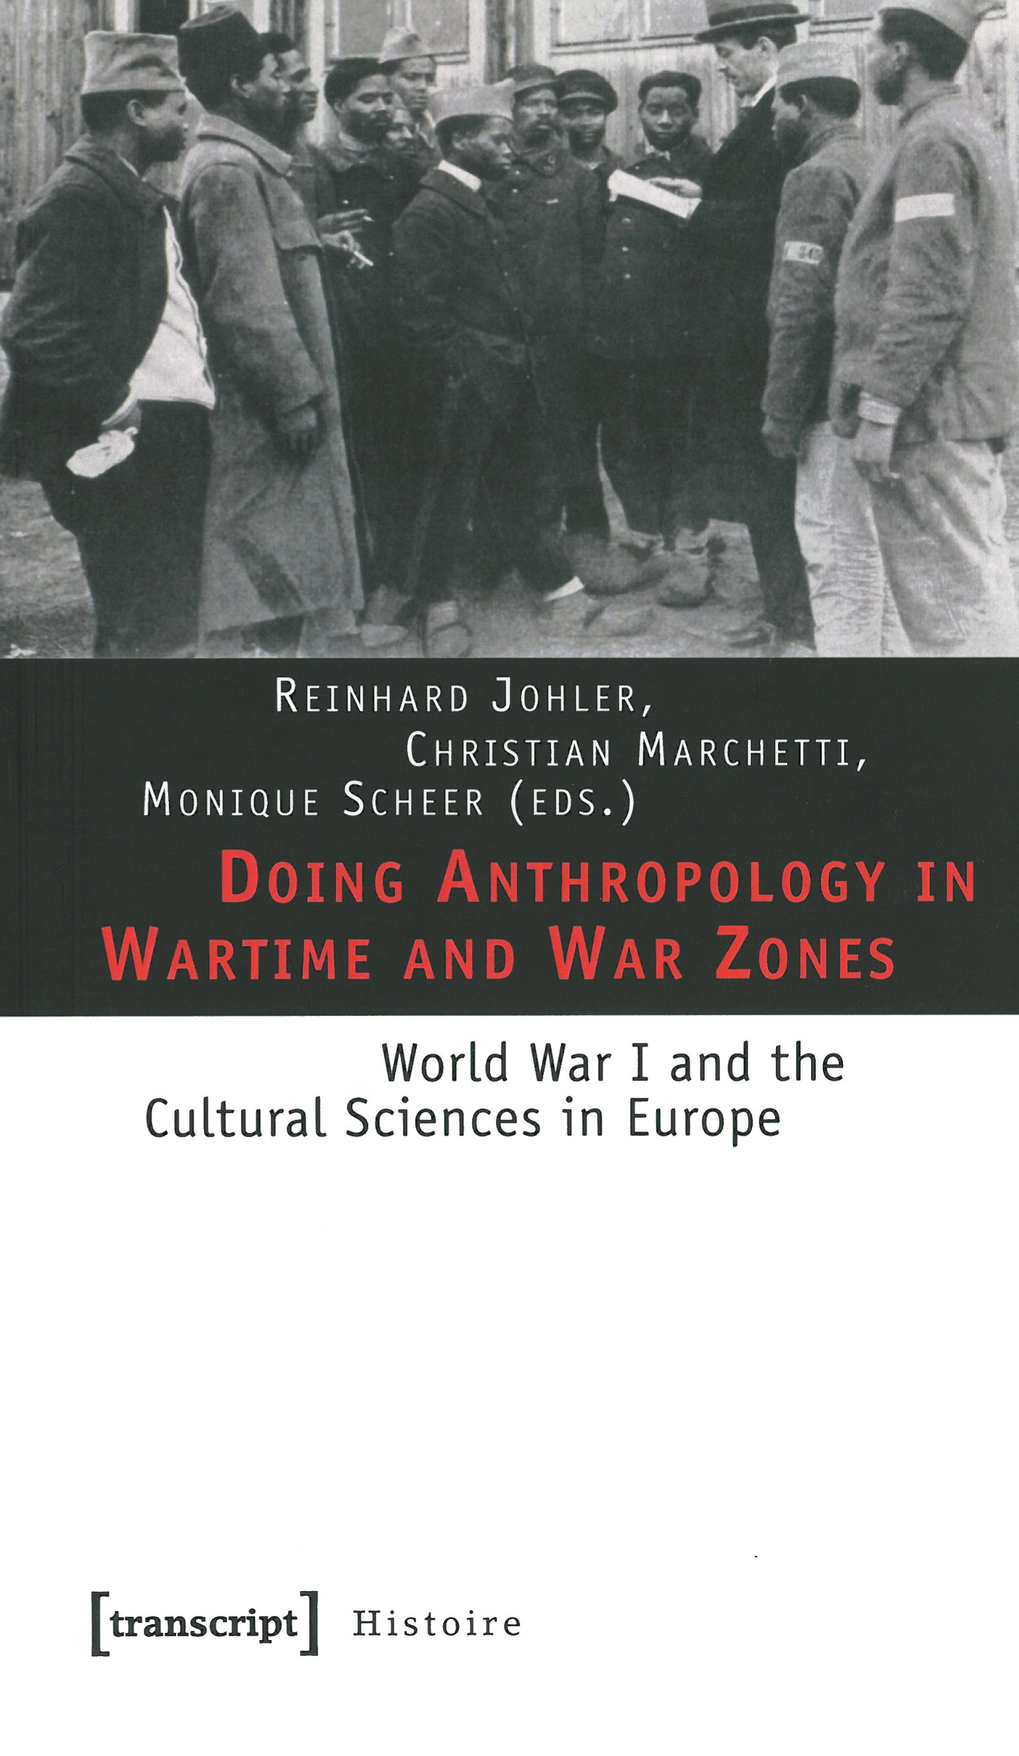 Reinhard Johler/ Christian Marchetti/ Monique Scheer (eds.), <em>Doing Anthropology in Wartime and War Zones. World War I and the Cultural Sciences in Europe</em>. Berlin: Transcript, 2010.